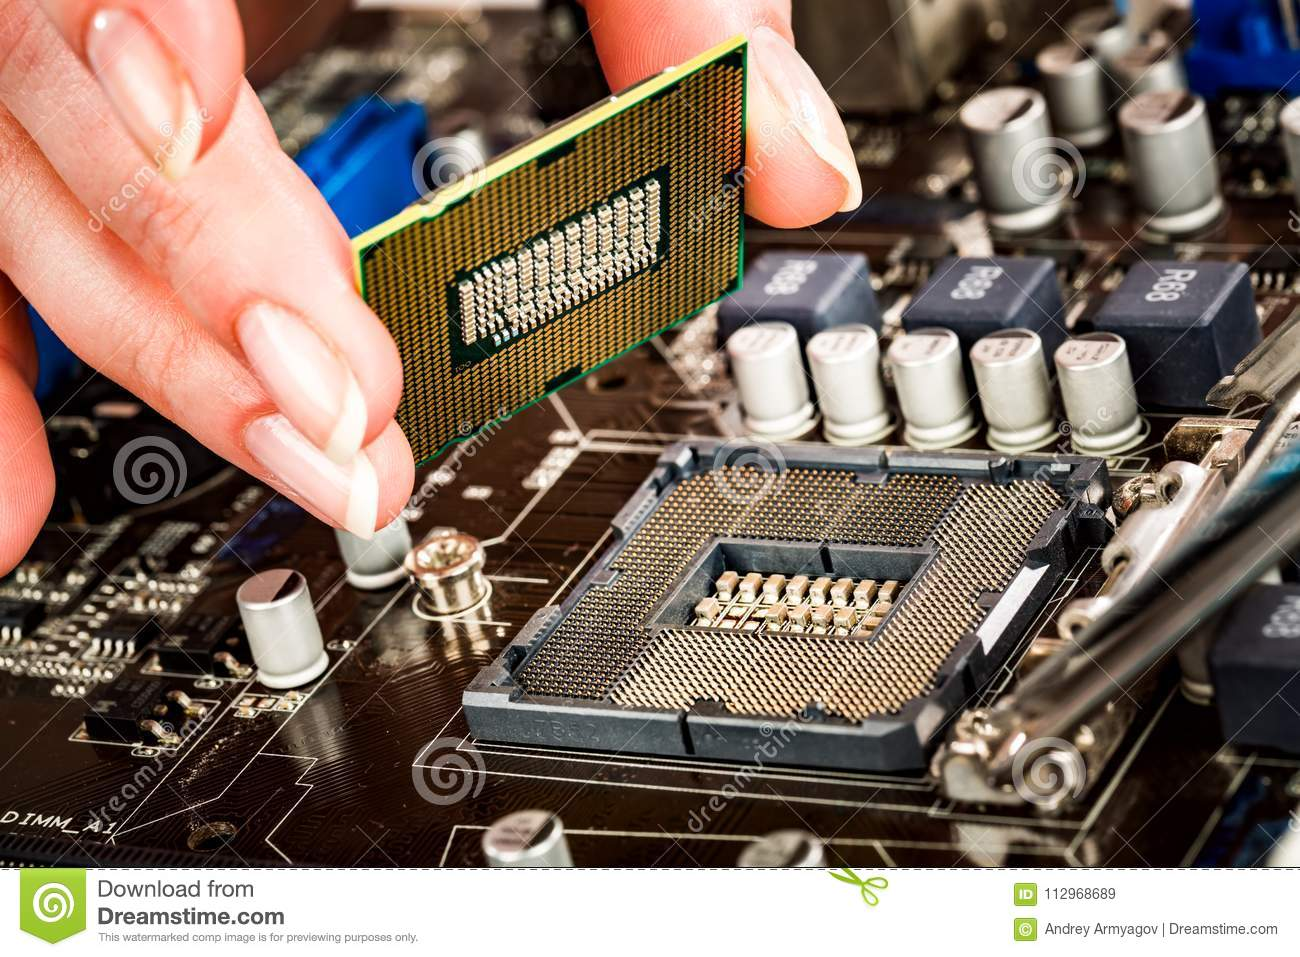 purpose of motherboard processor